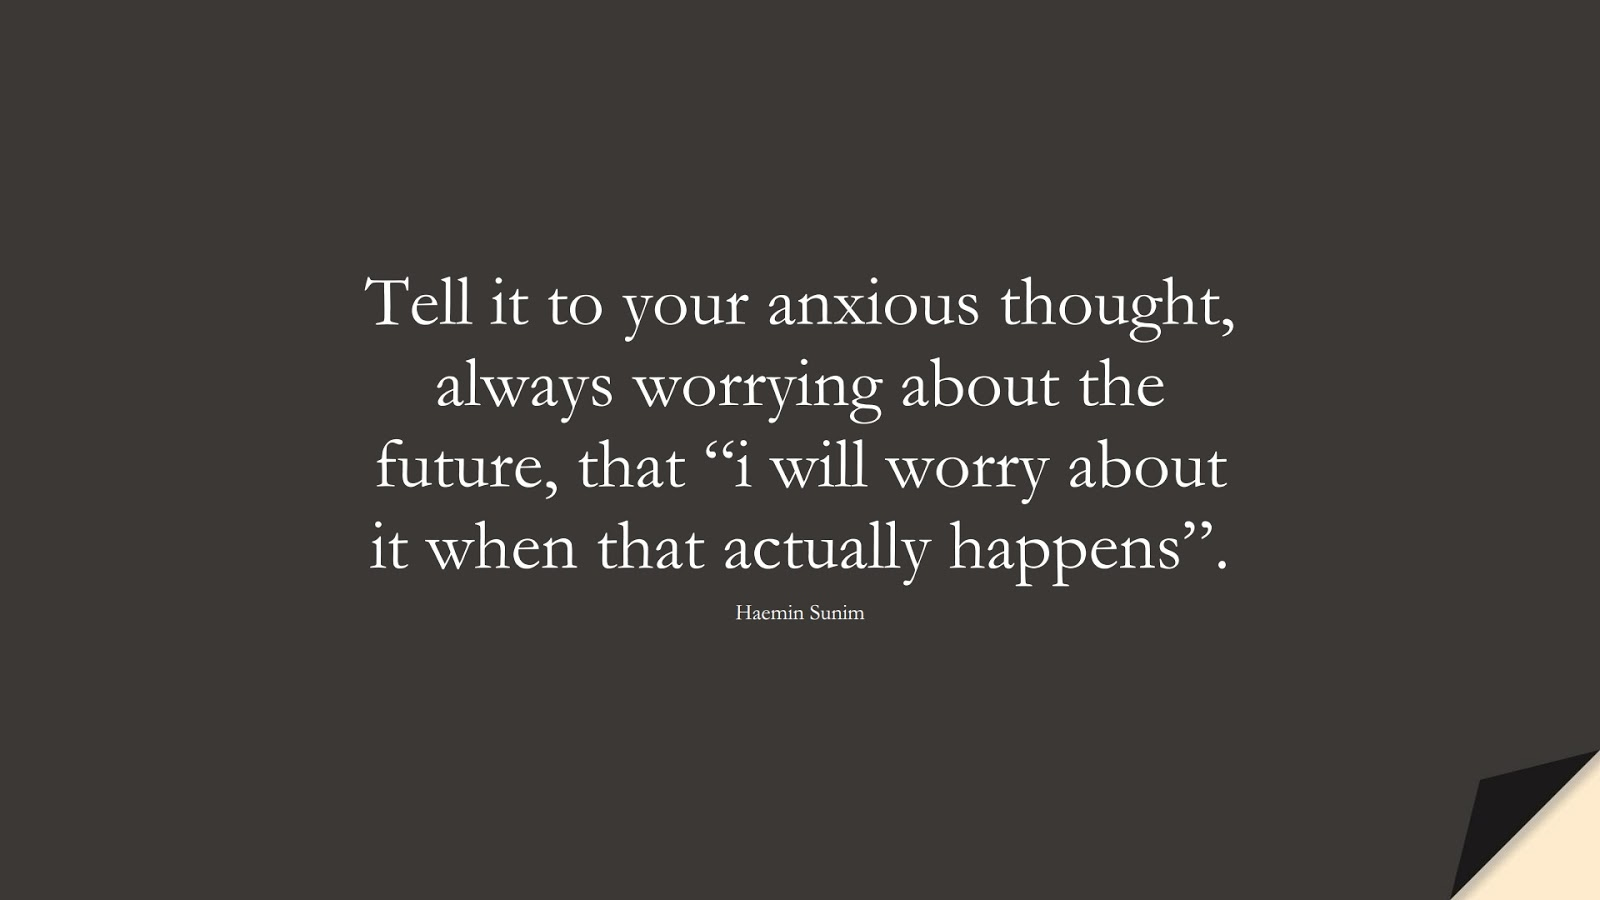 """Tell it to your anxious thought, always worrying about the future, that """"i will worry about it when that actually happens"""". (Haemin Sunim);  #AnxietyQuotes"""